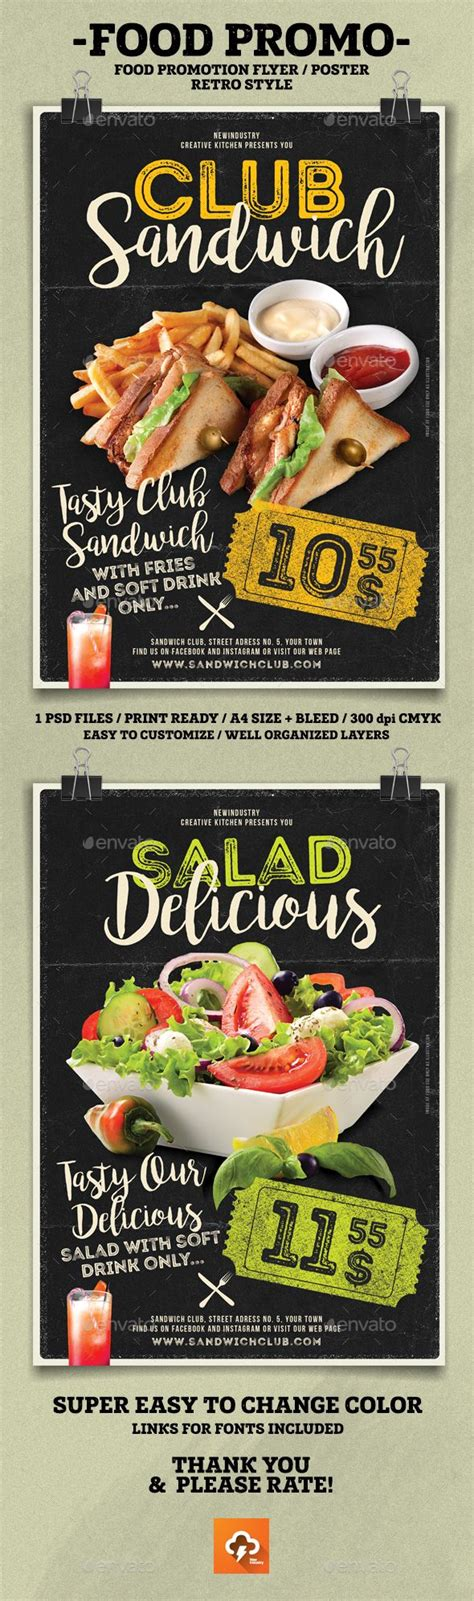 templates for promotional flyers food promotion flyer poster psd templates promotion and